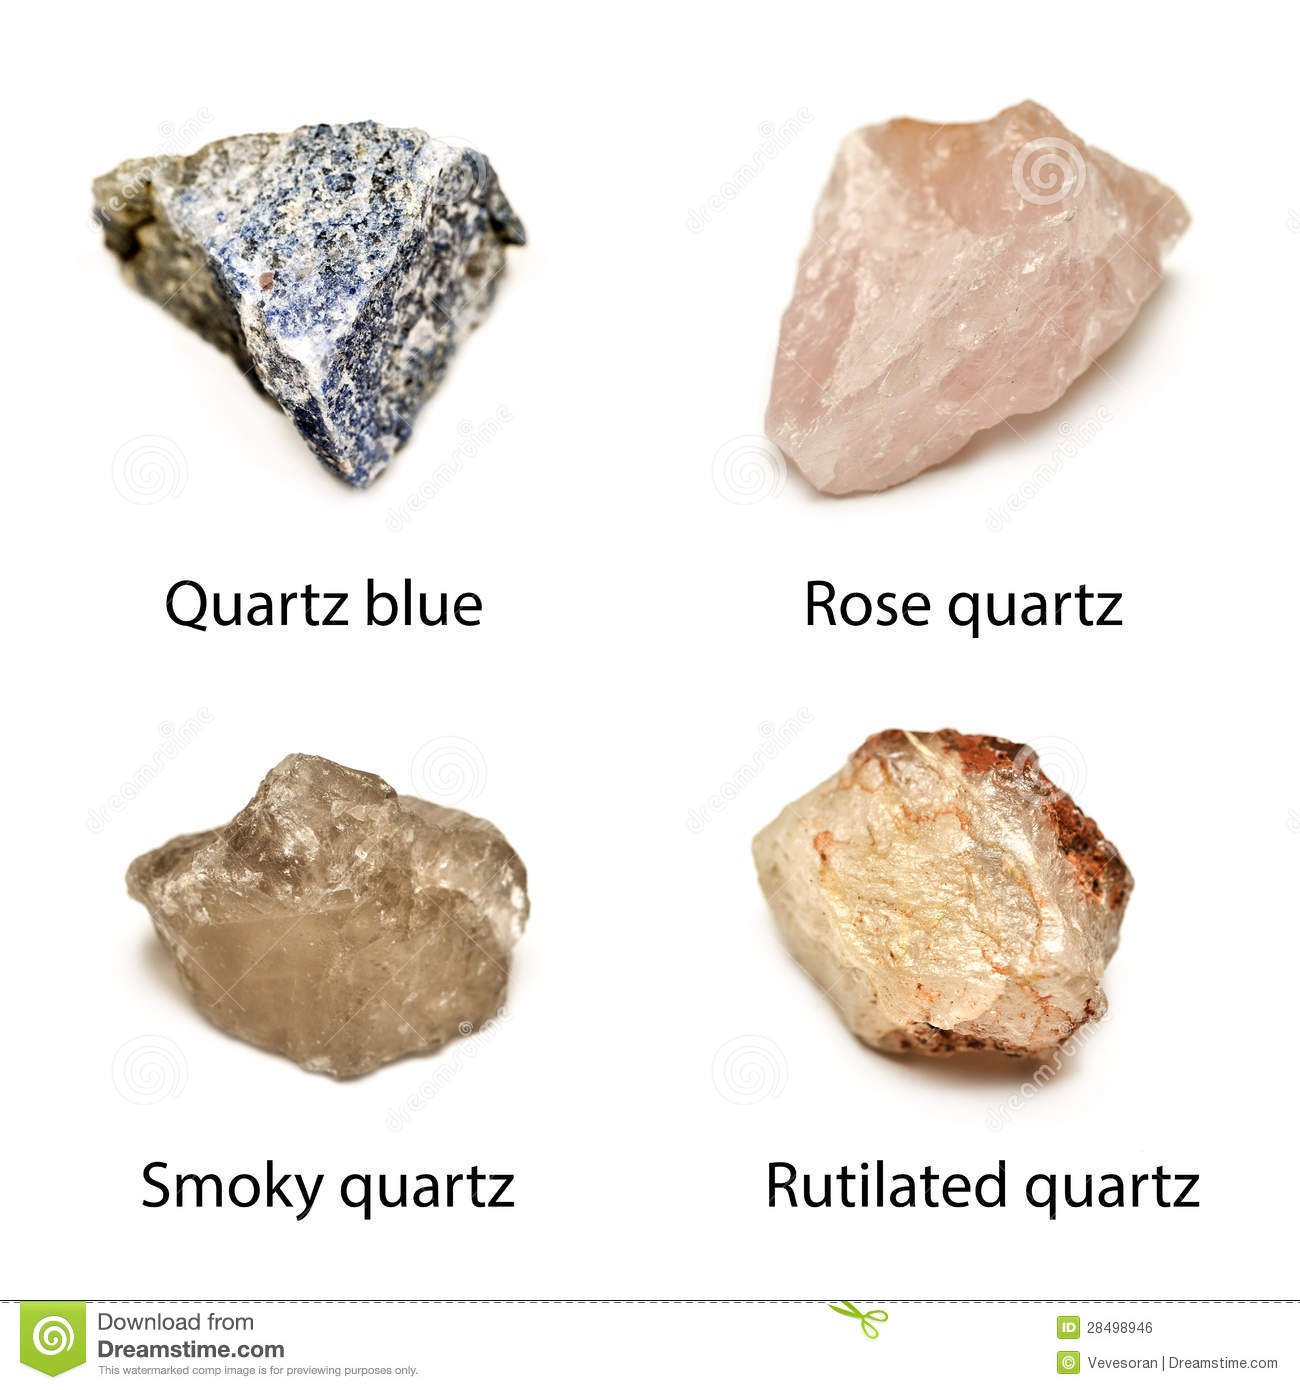 Background Quartz Blue Rose Quartz Smoky Quartz Rutilated Quartz